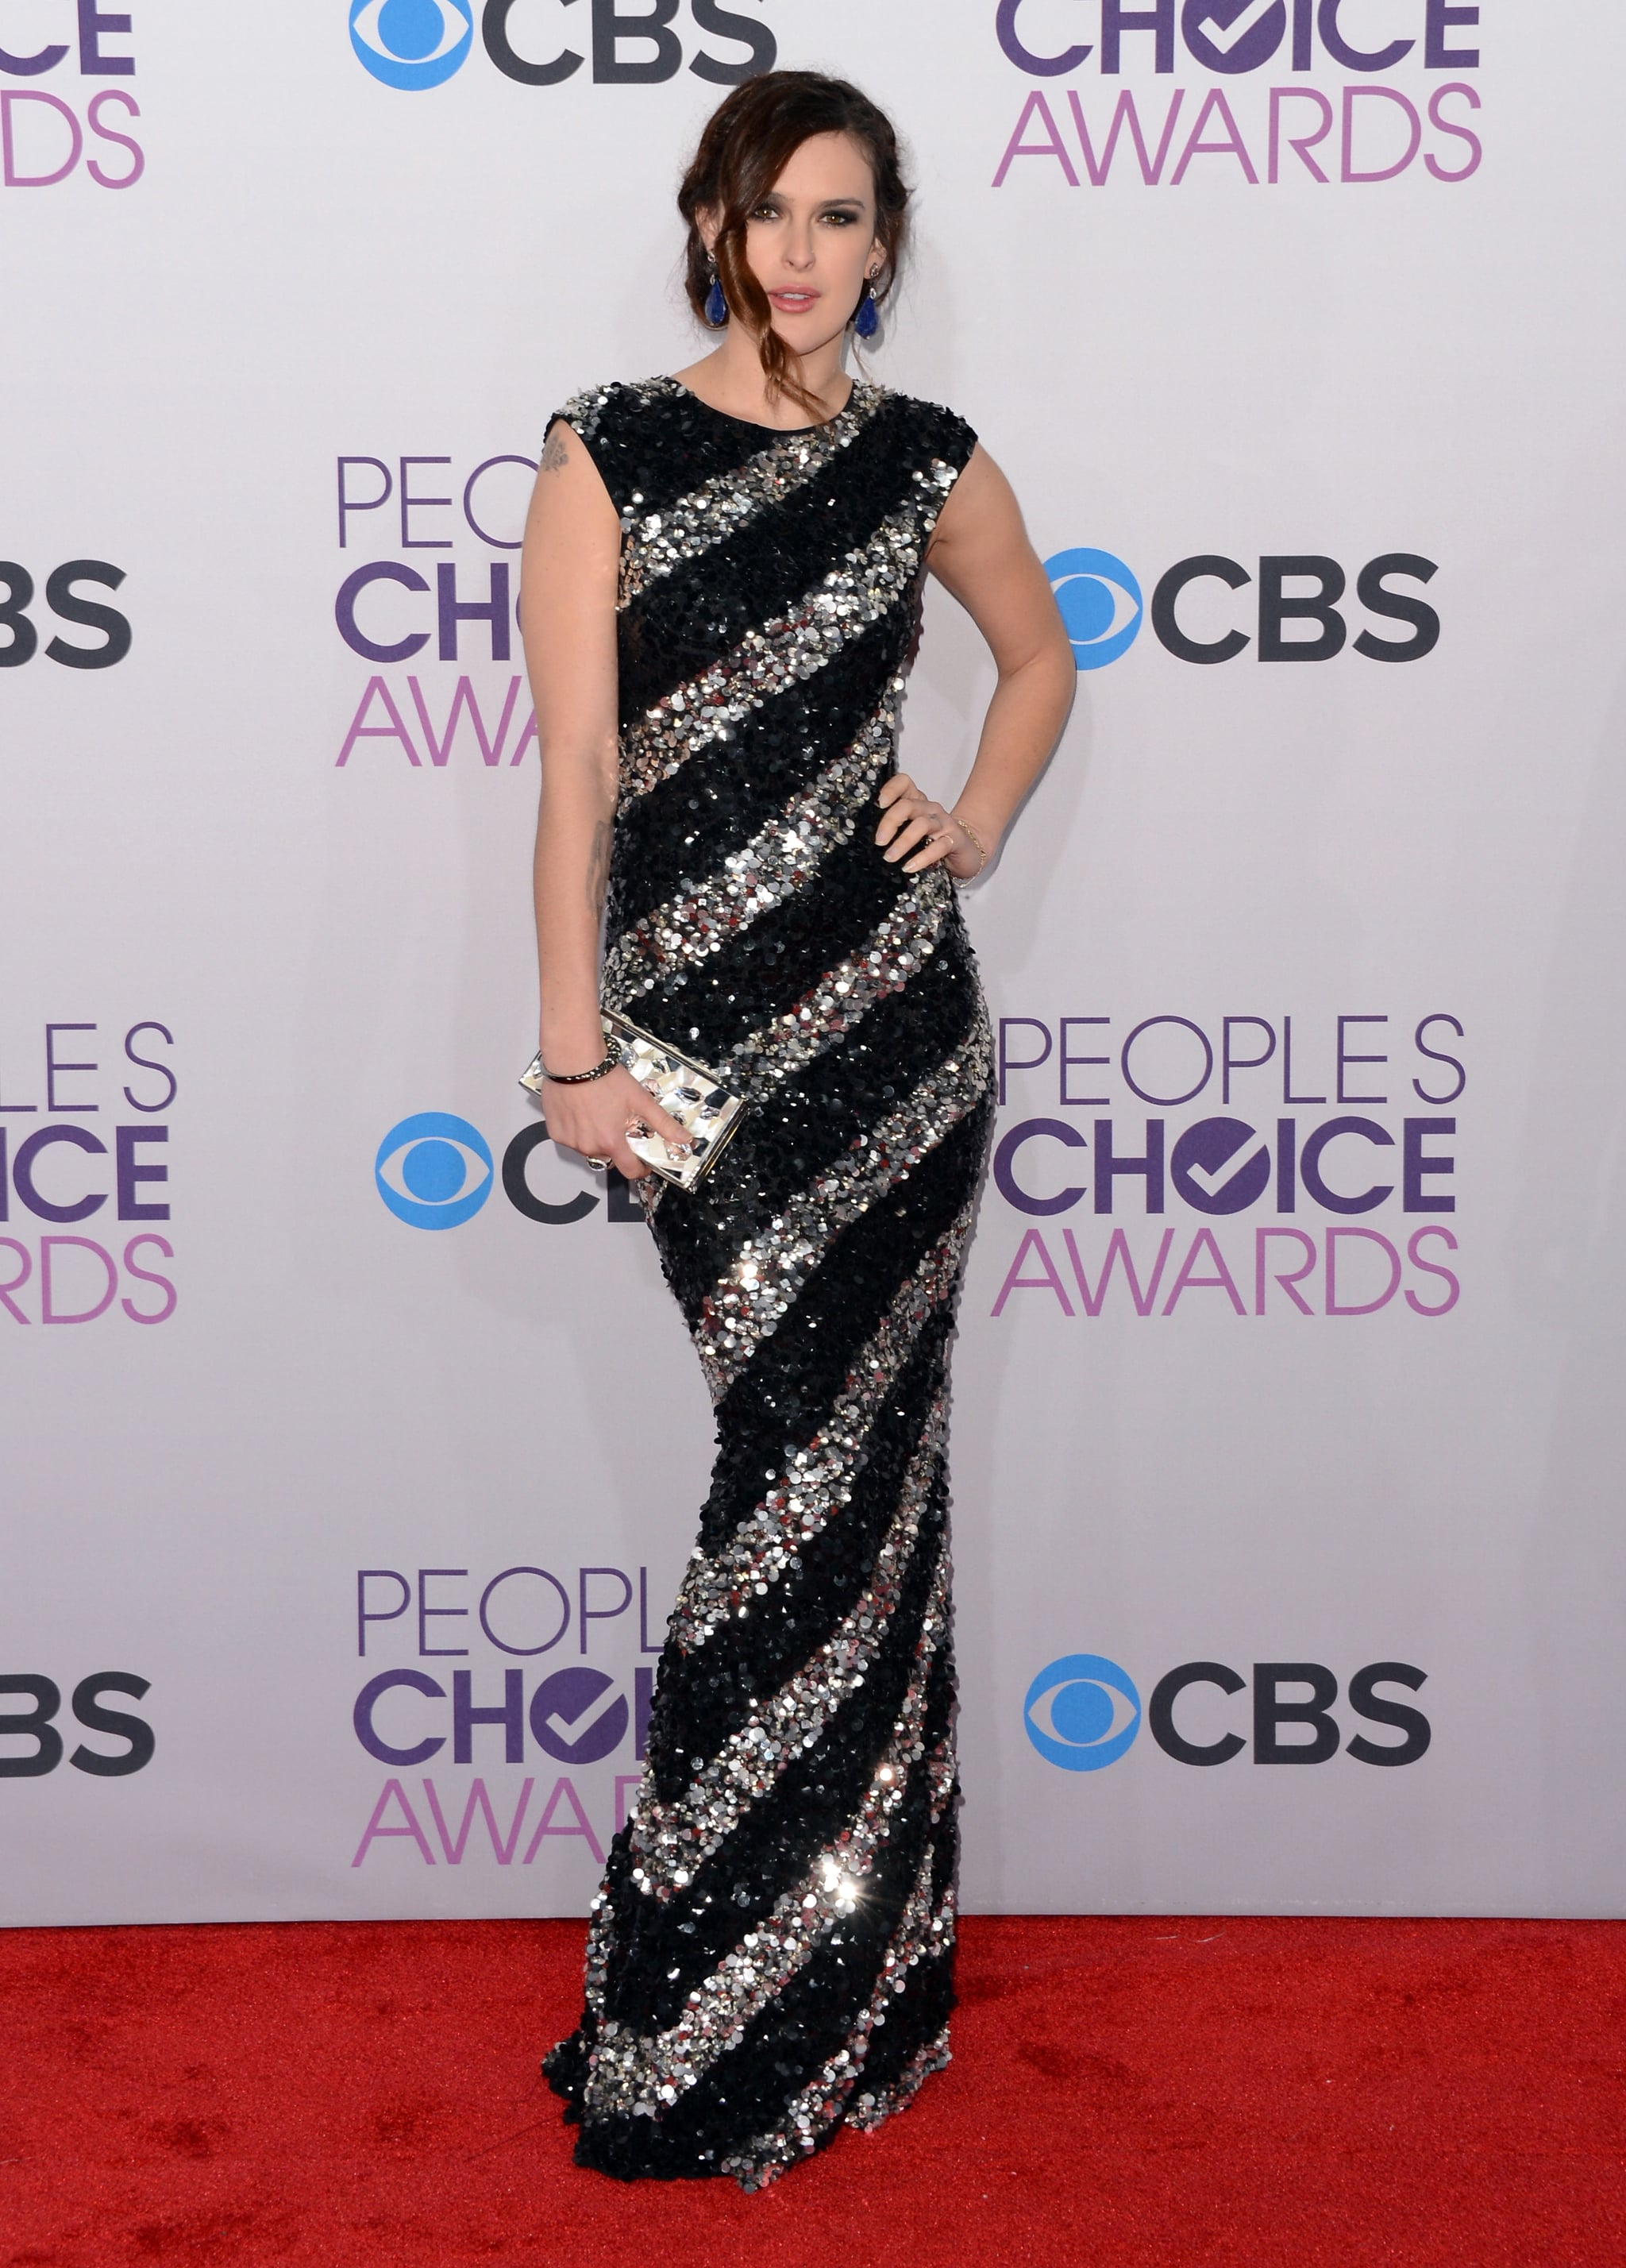 Rumer Willis arrived at the People's Choice Awards.